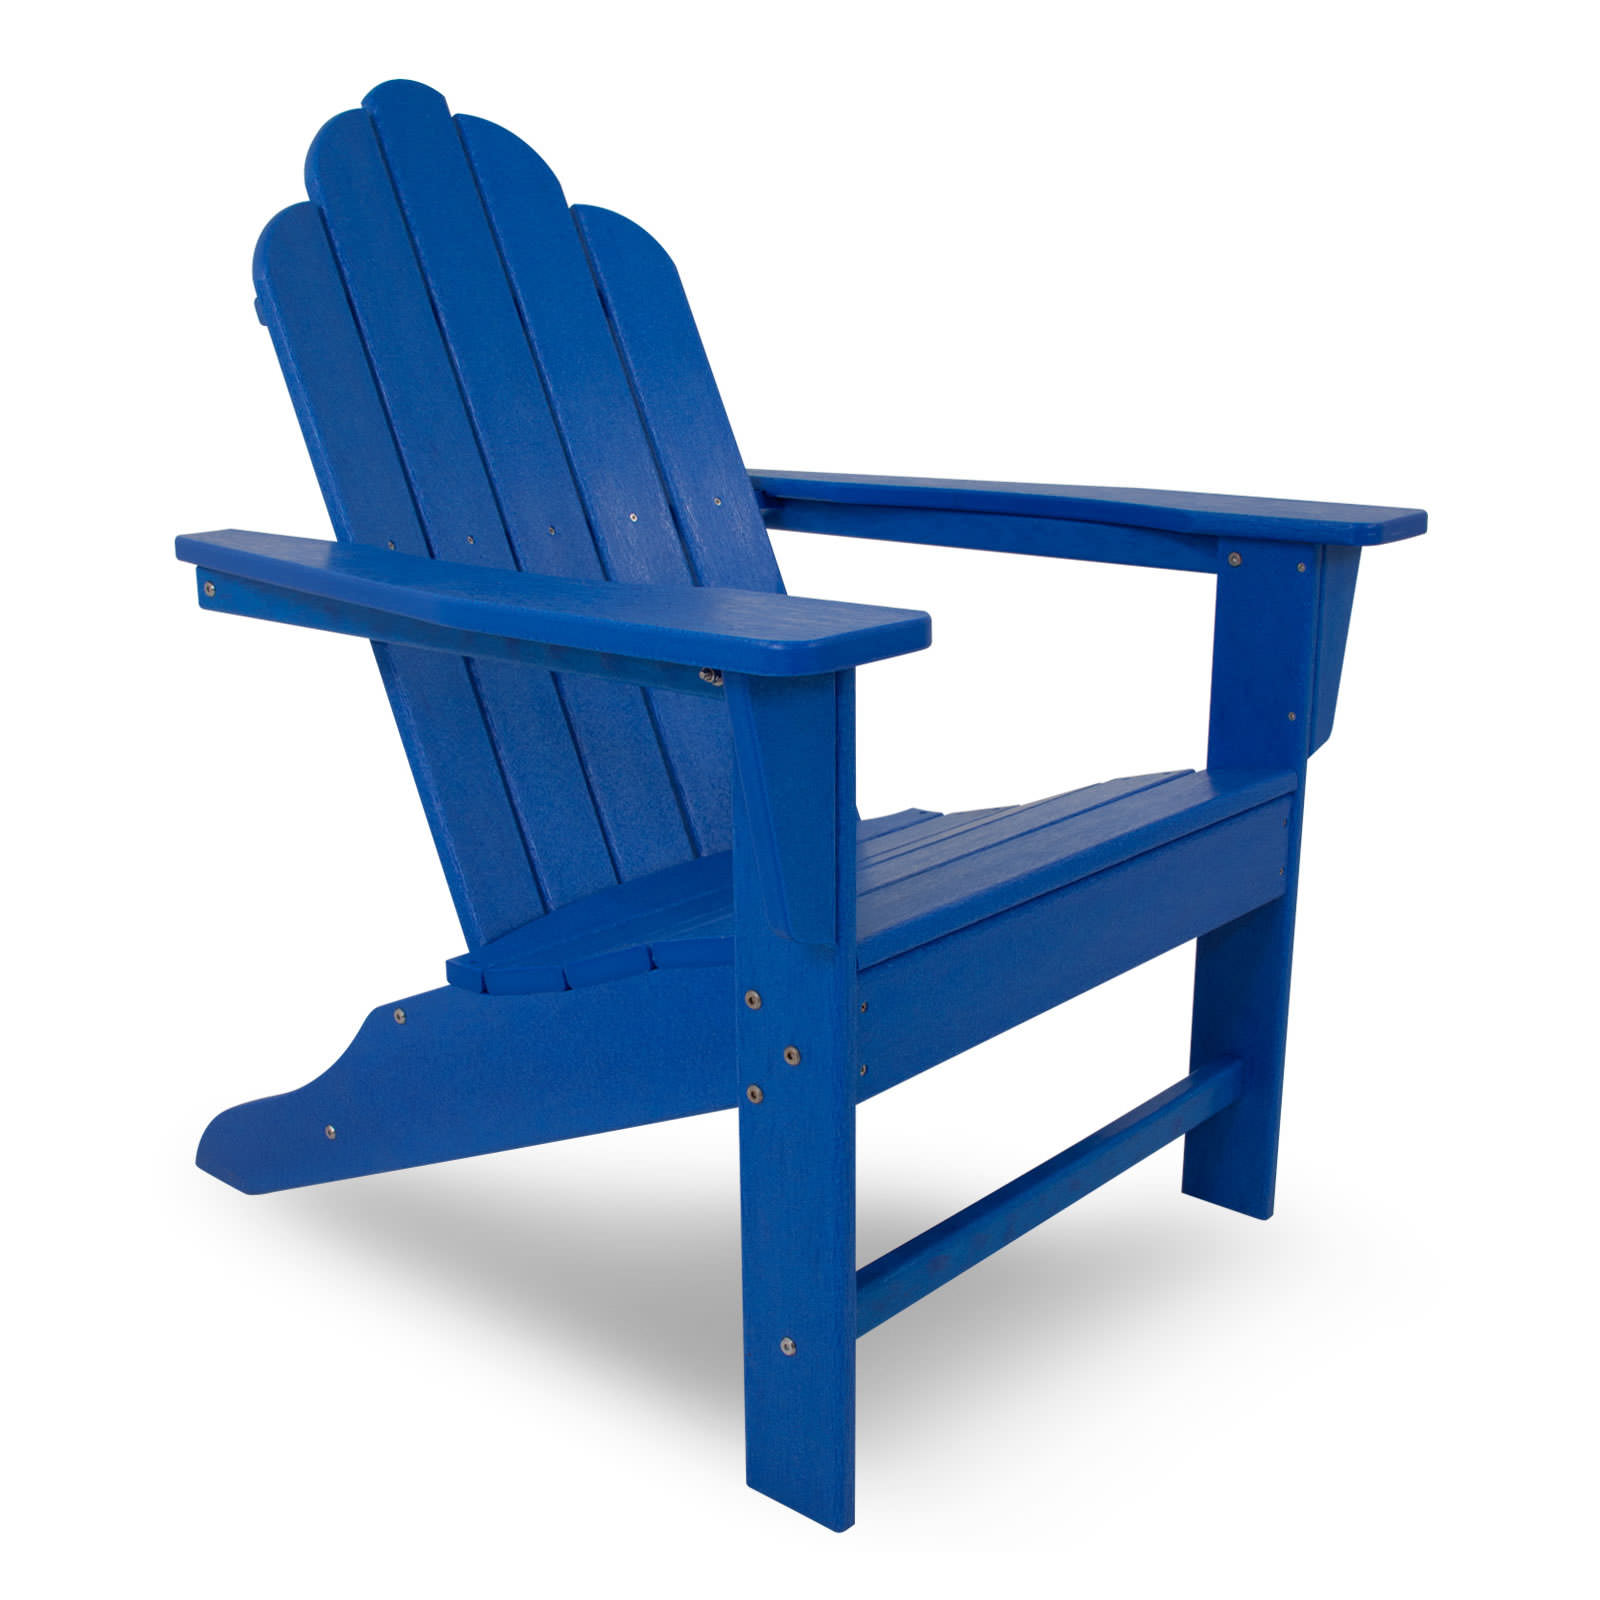 POLYWOOD® Long Island Adirondack Seating Set   Long Island   POLYWOOD®  Outdoor Furniture   Collections